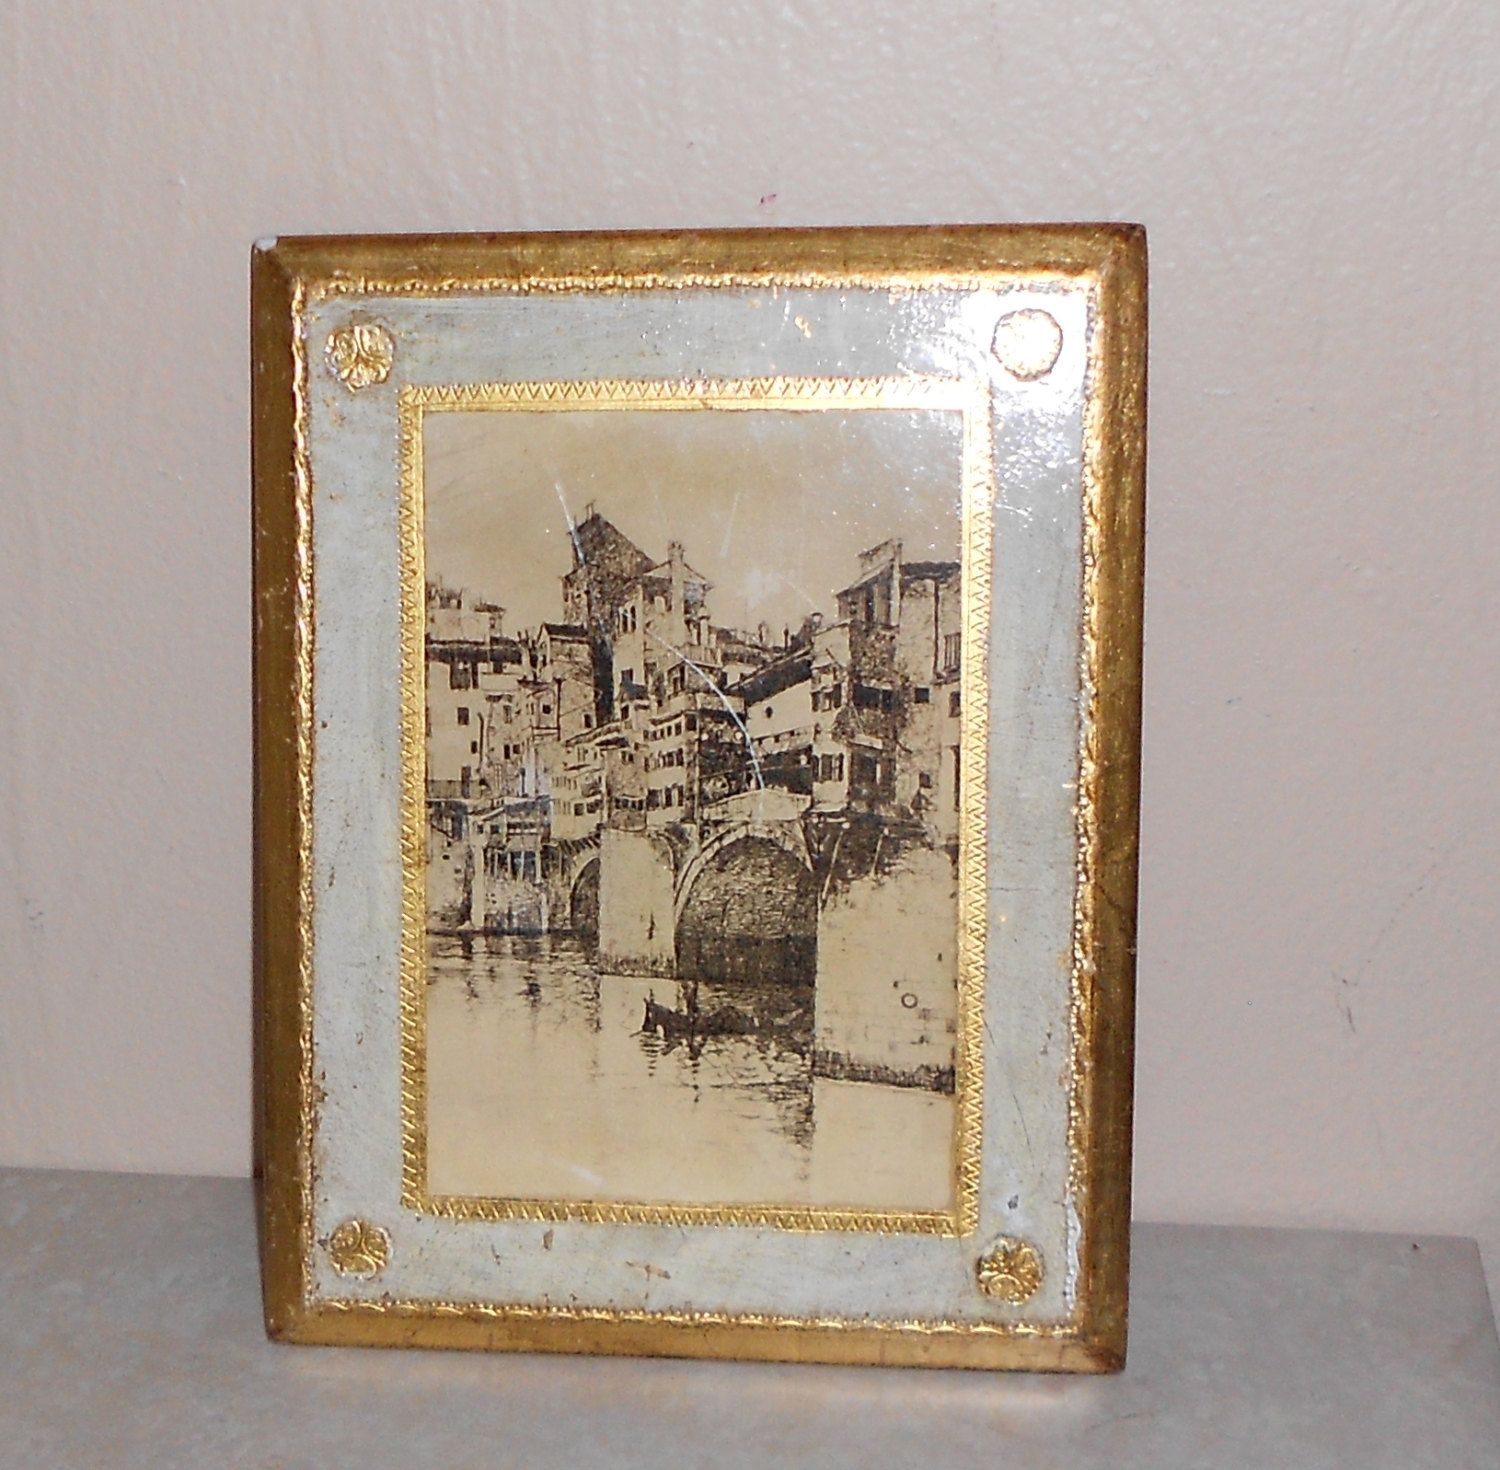 Gold Framed Florentine Art Wall Hanging ~ Made In Italy